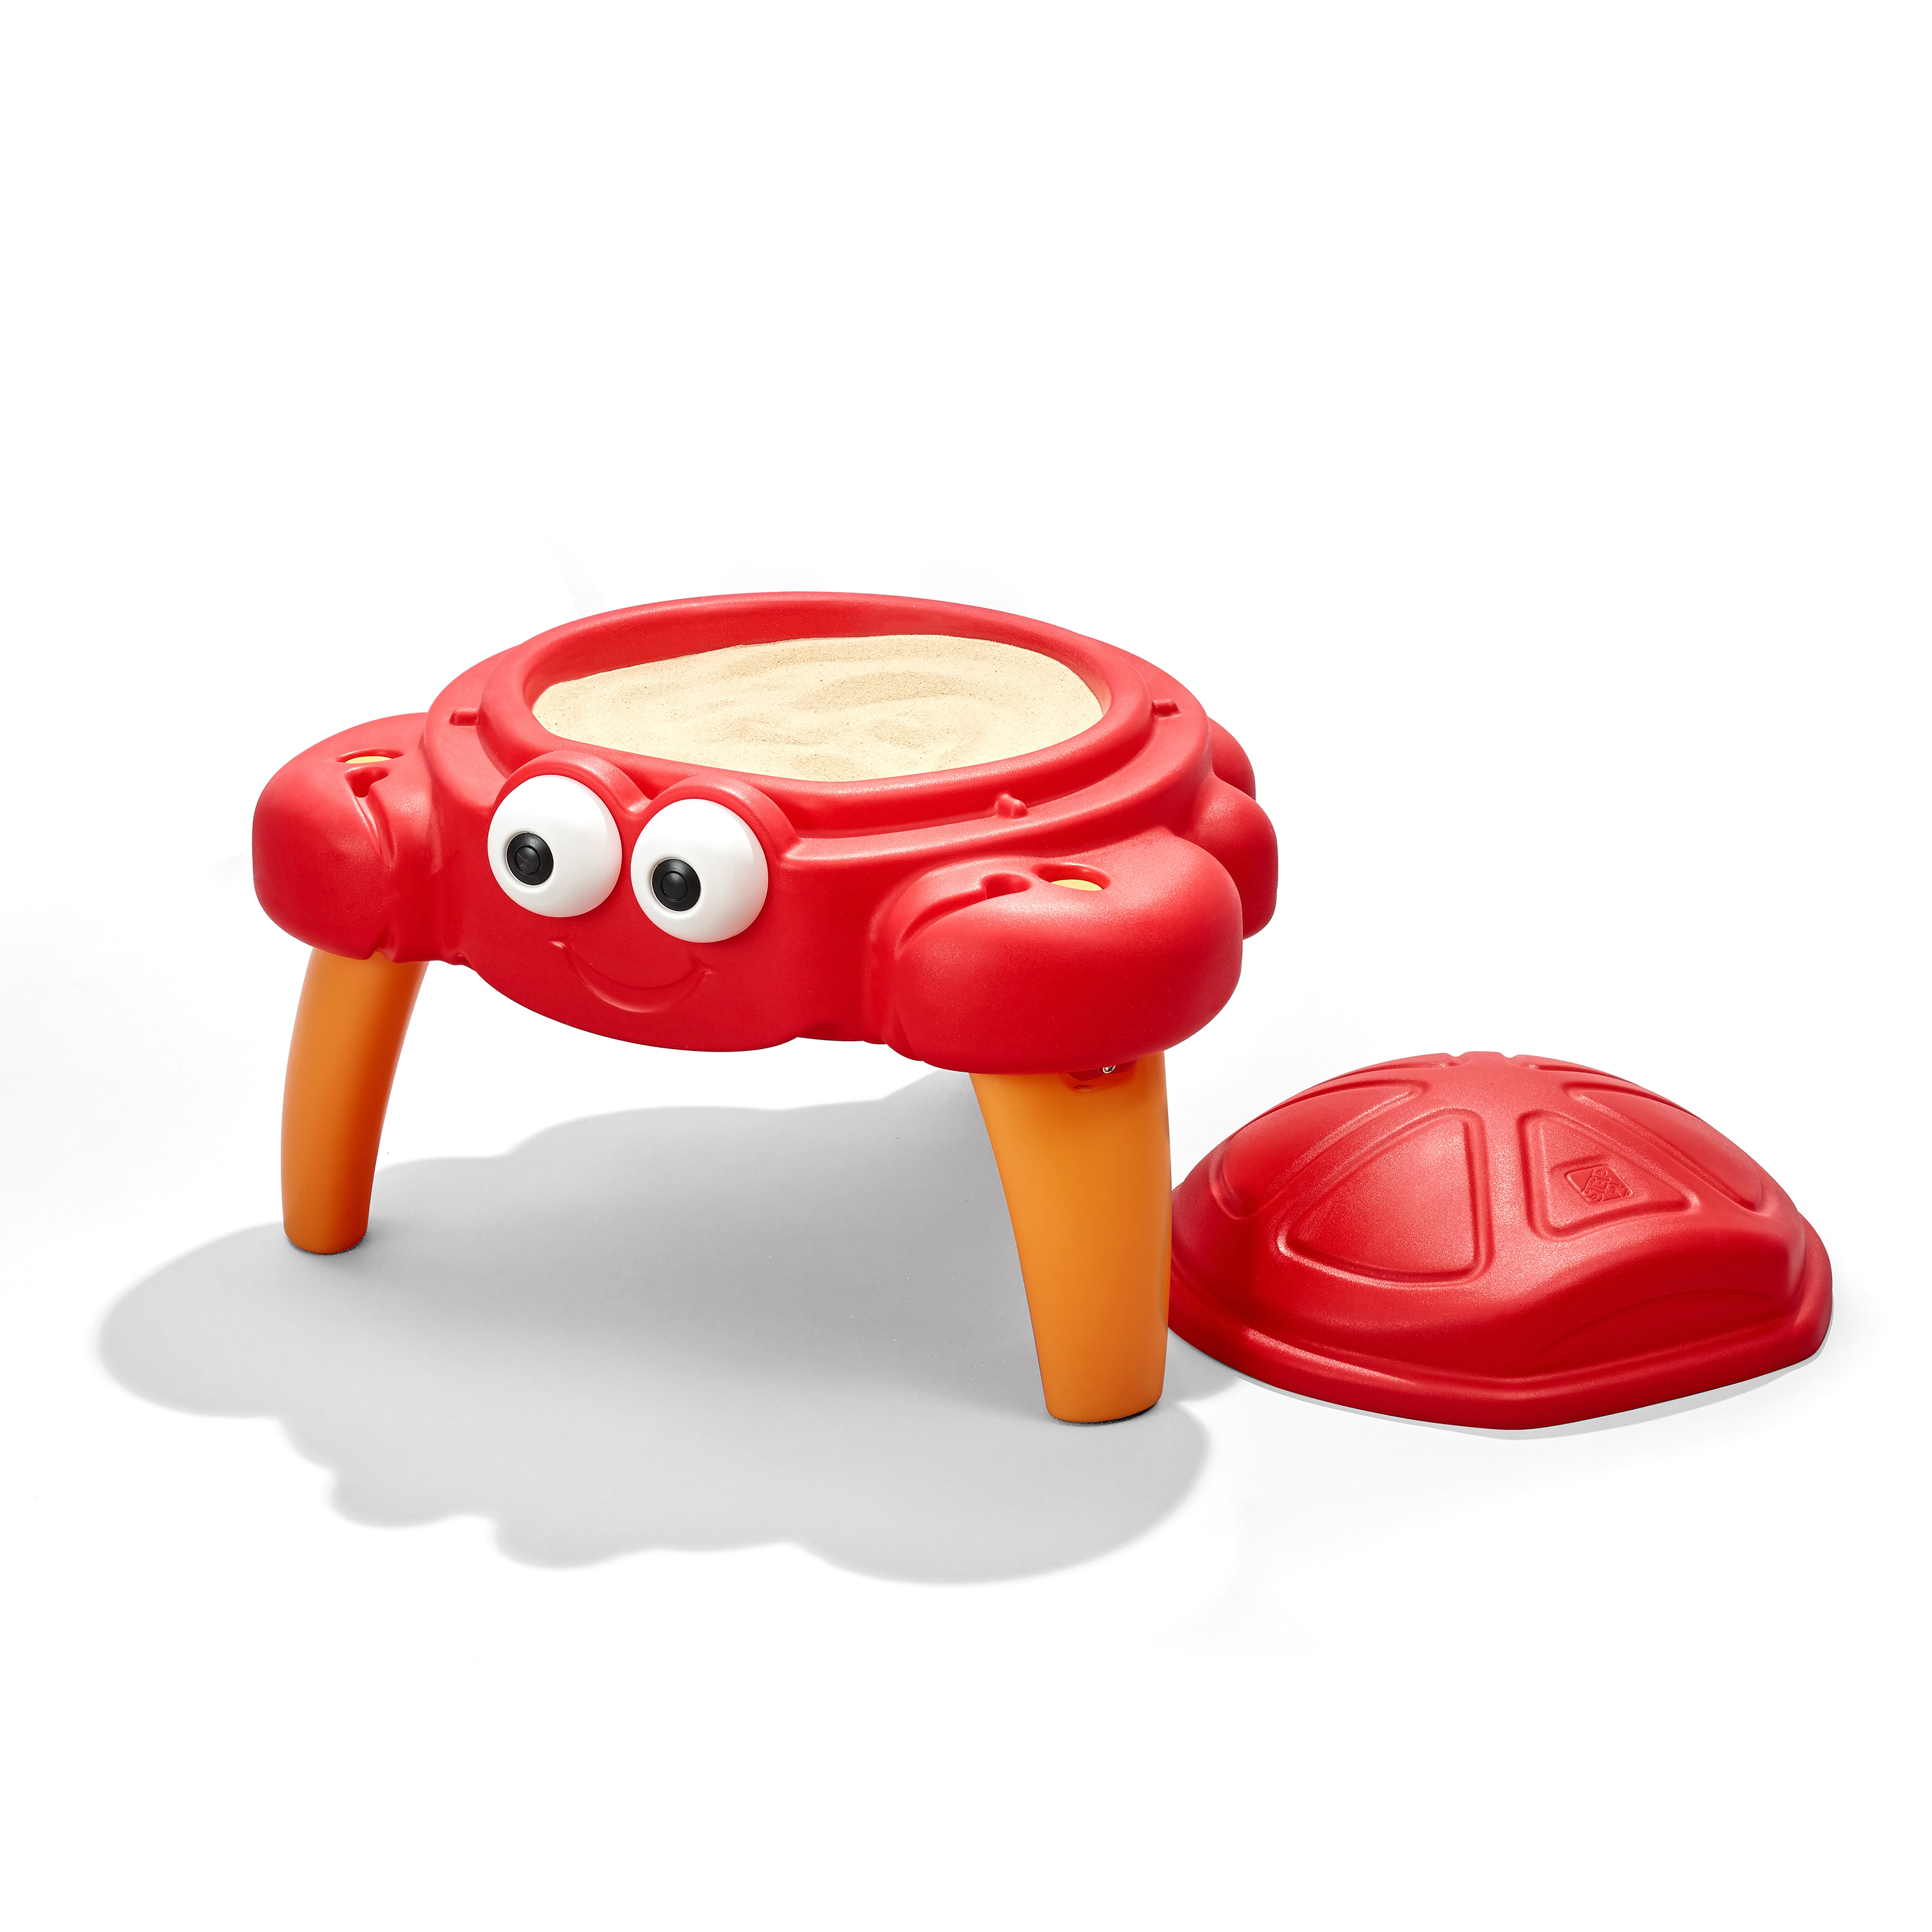 Step2 Crabbie Sand Table, Includes 4-piece sand toy accessory set